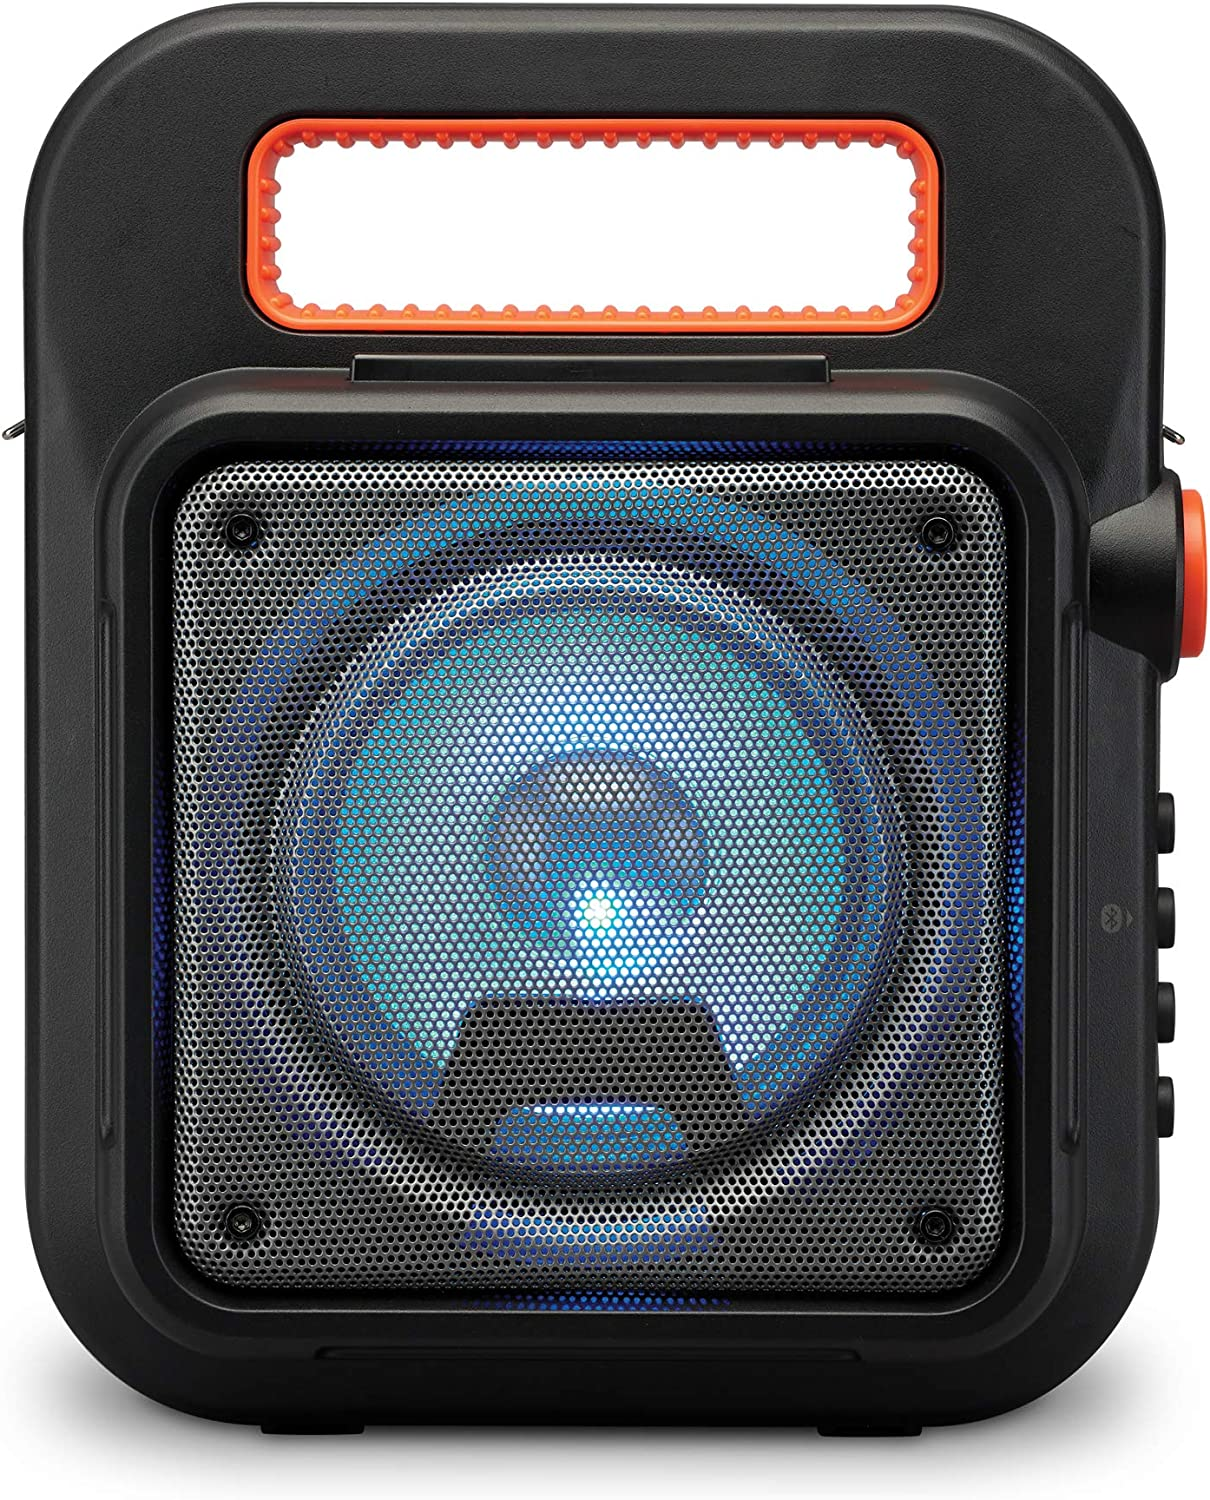 iLive ISB309B Wireless Tailgate Party Speaker, with LED Light Effects and Built-in Rechargeable Battery, Black